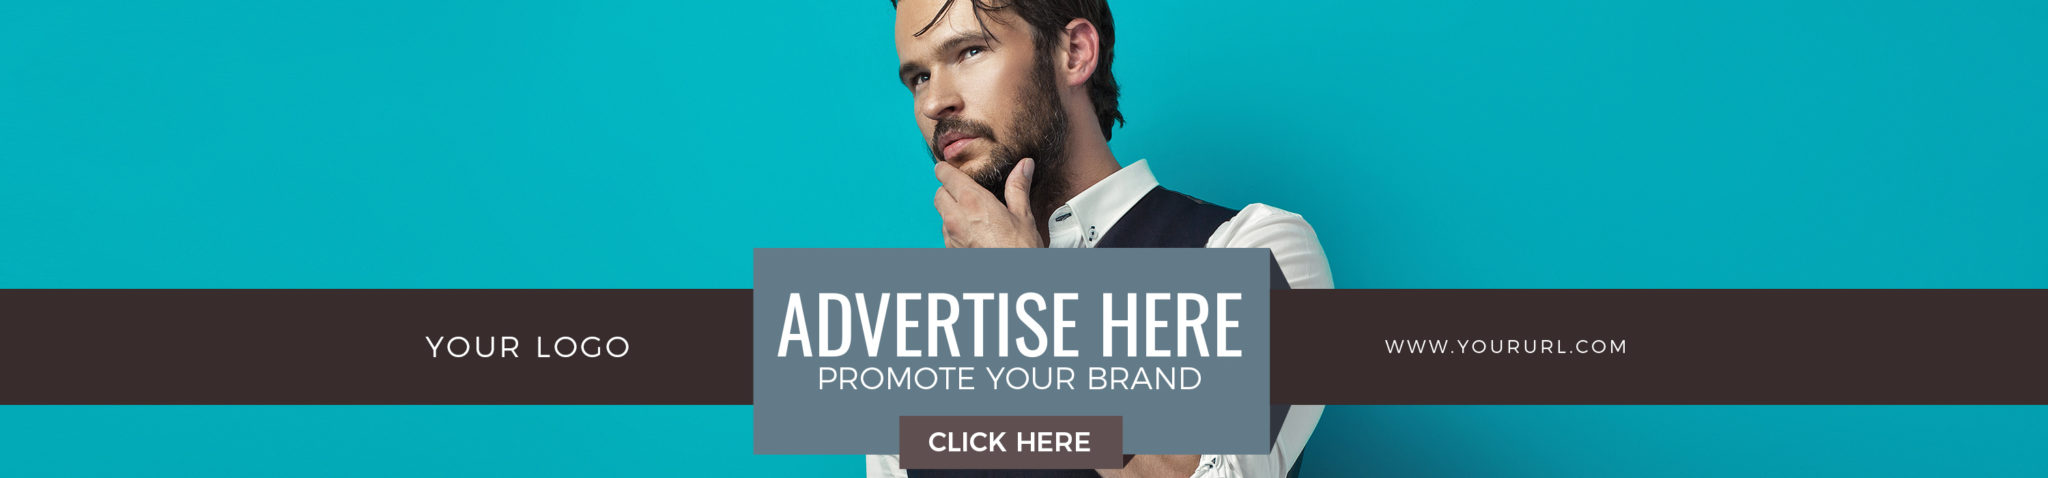 ADVERTISE-HERE---HOMMES-1